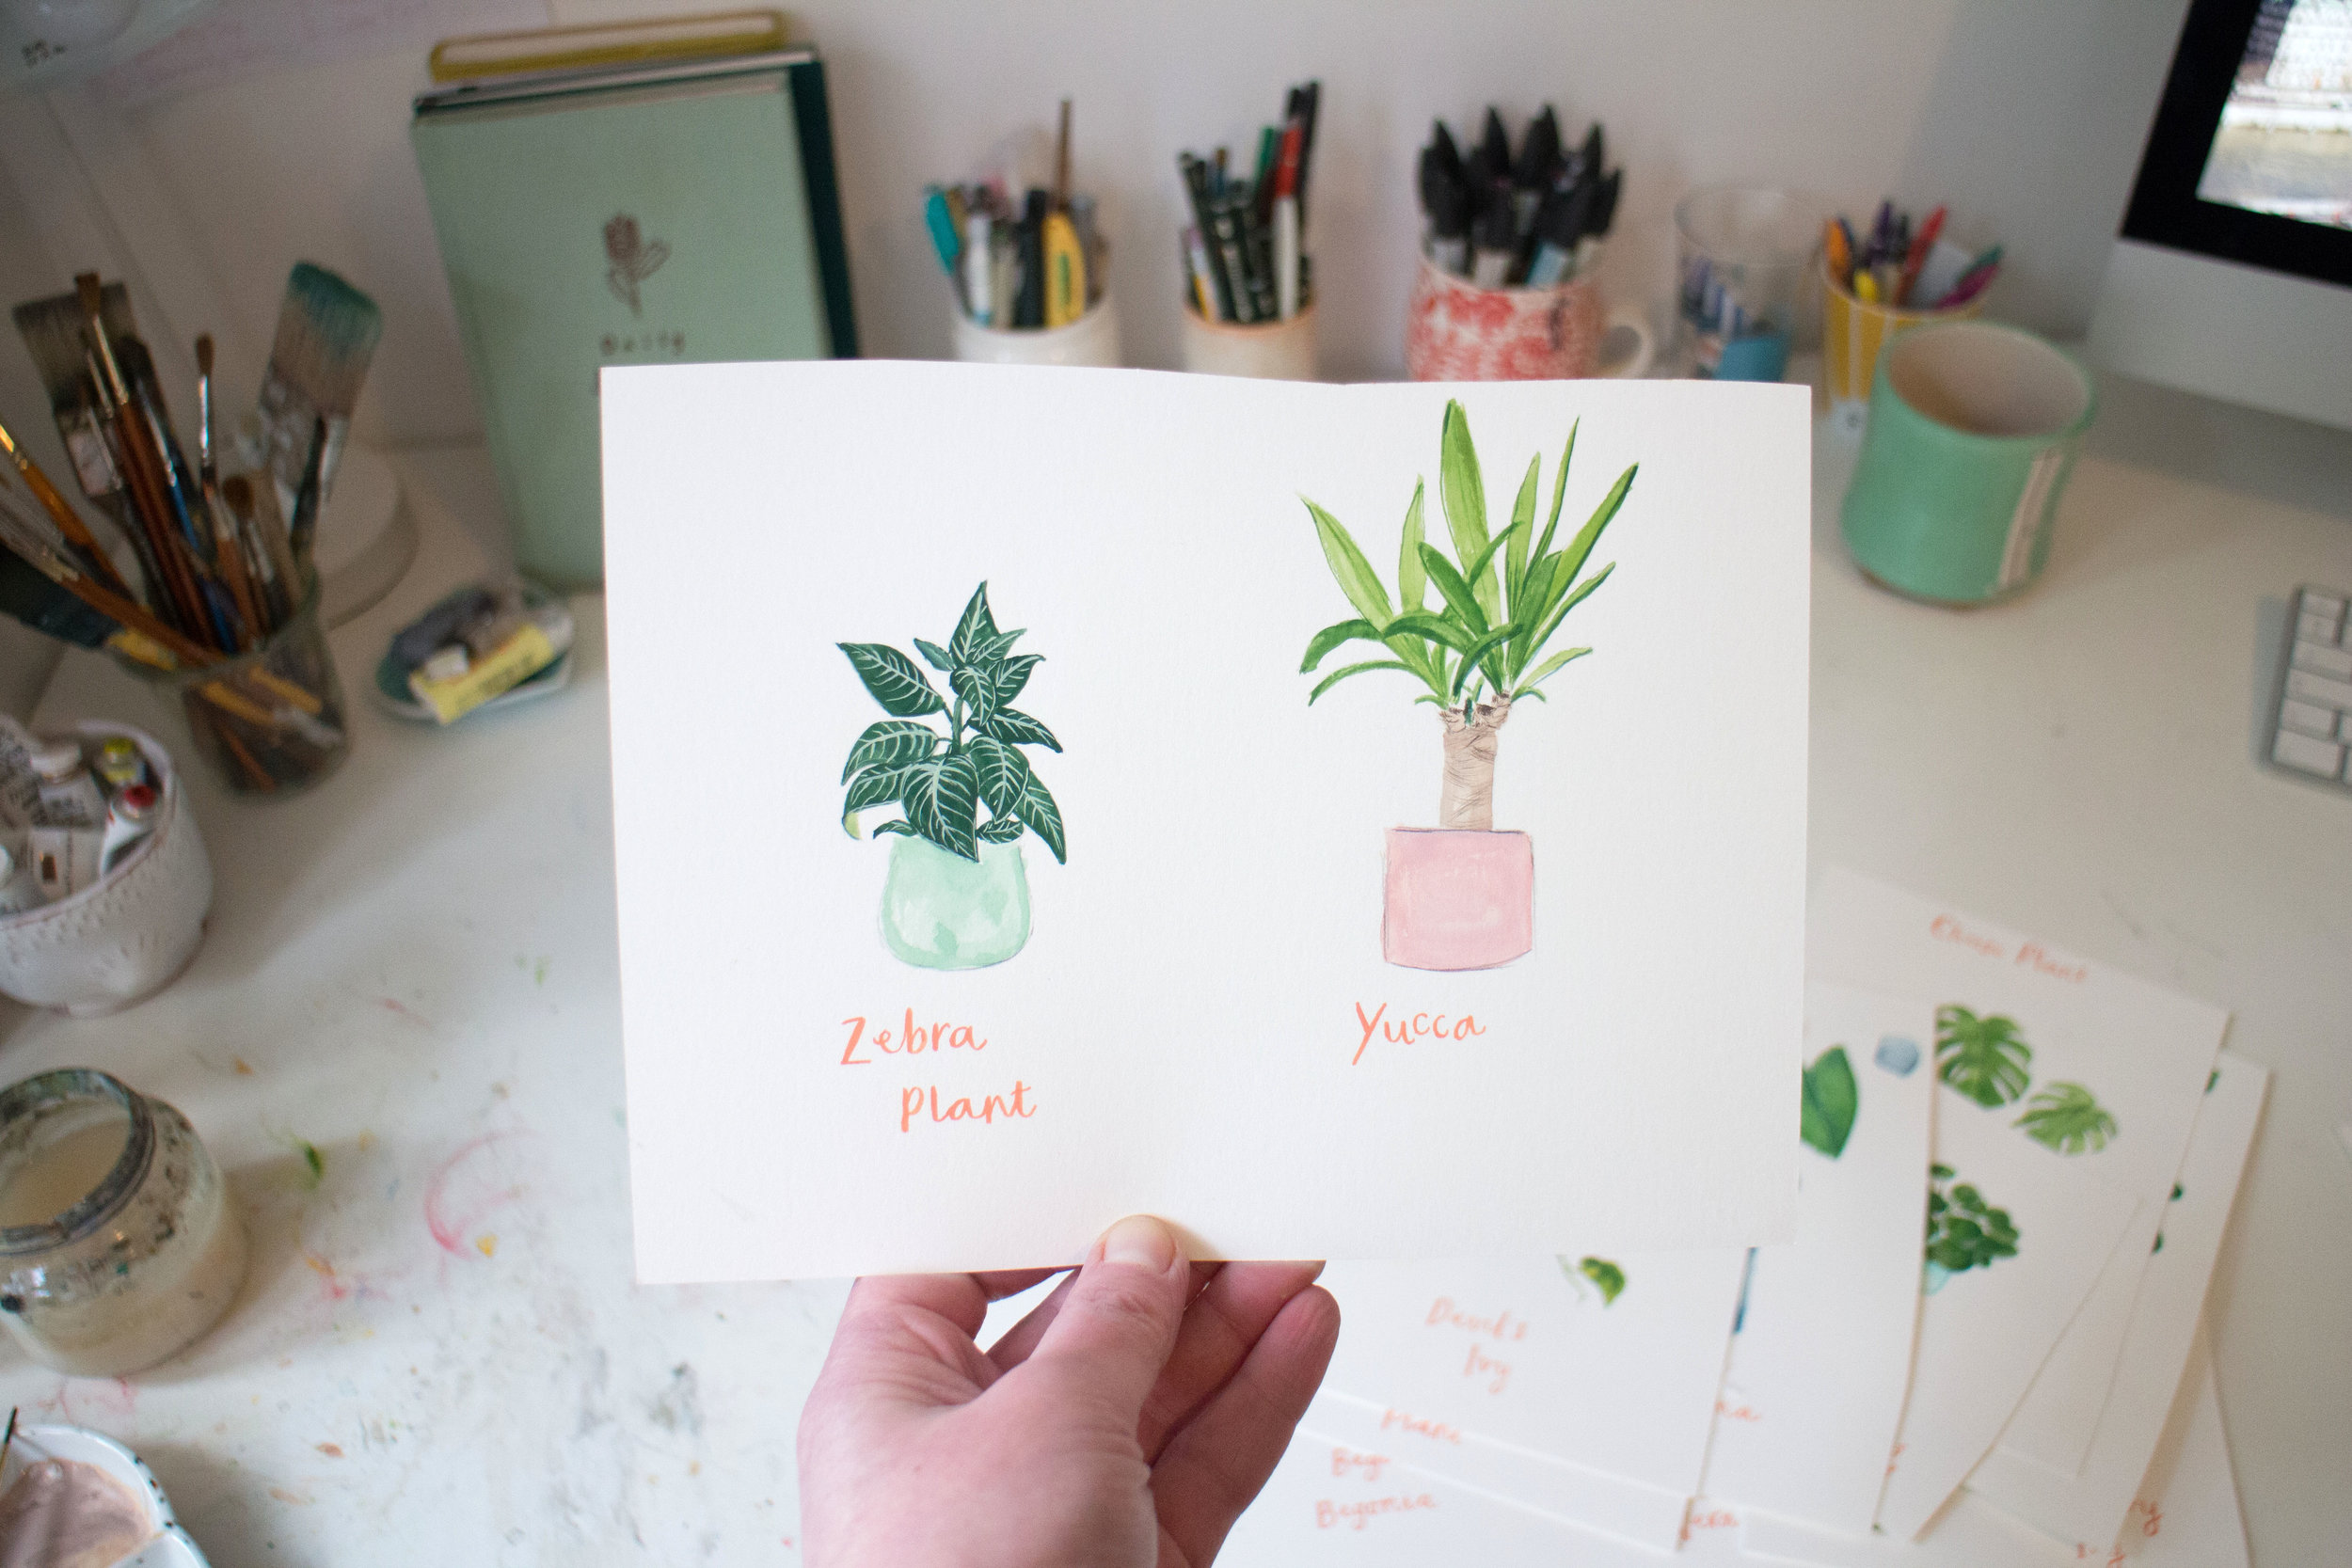 I love how these two look together on the paper. I like to work quite methodically, so these were the last two I painted (doing the Yucca first on the right because I'm left-handed).